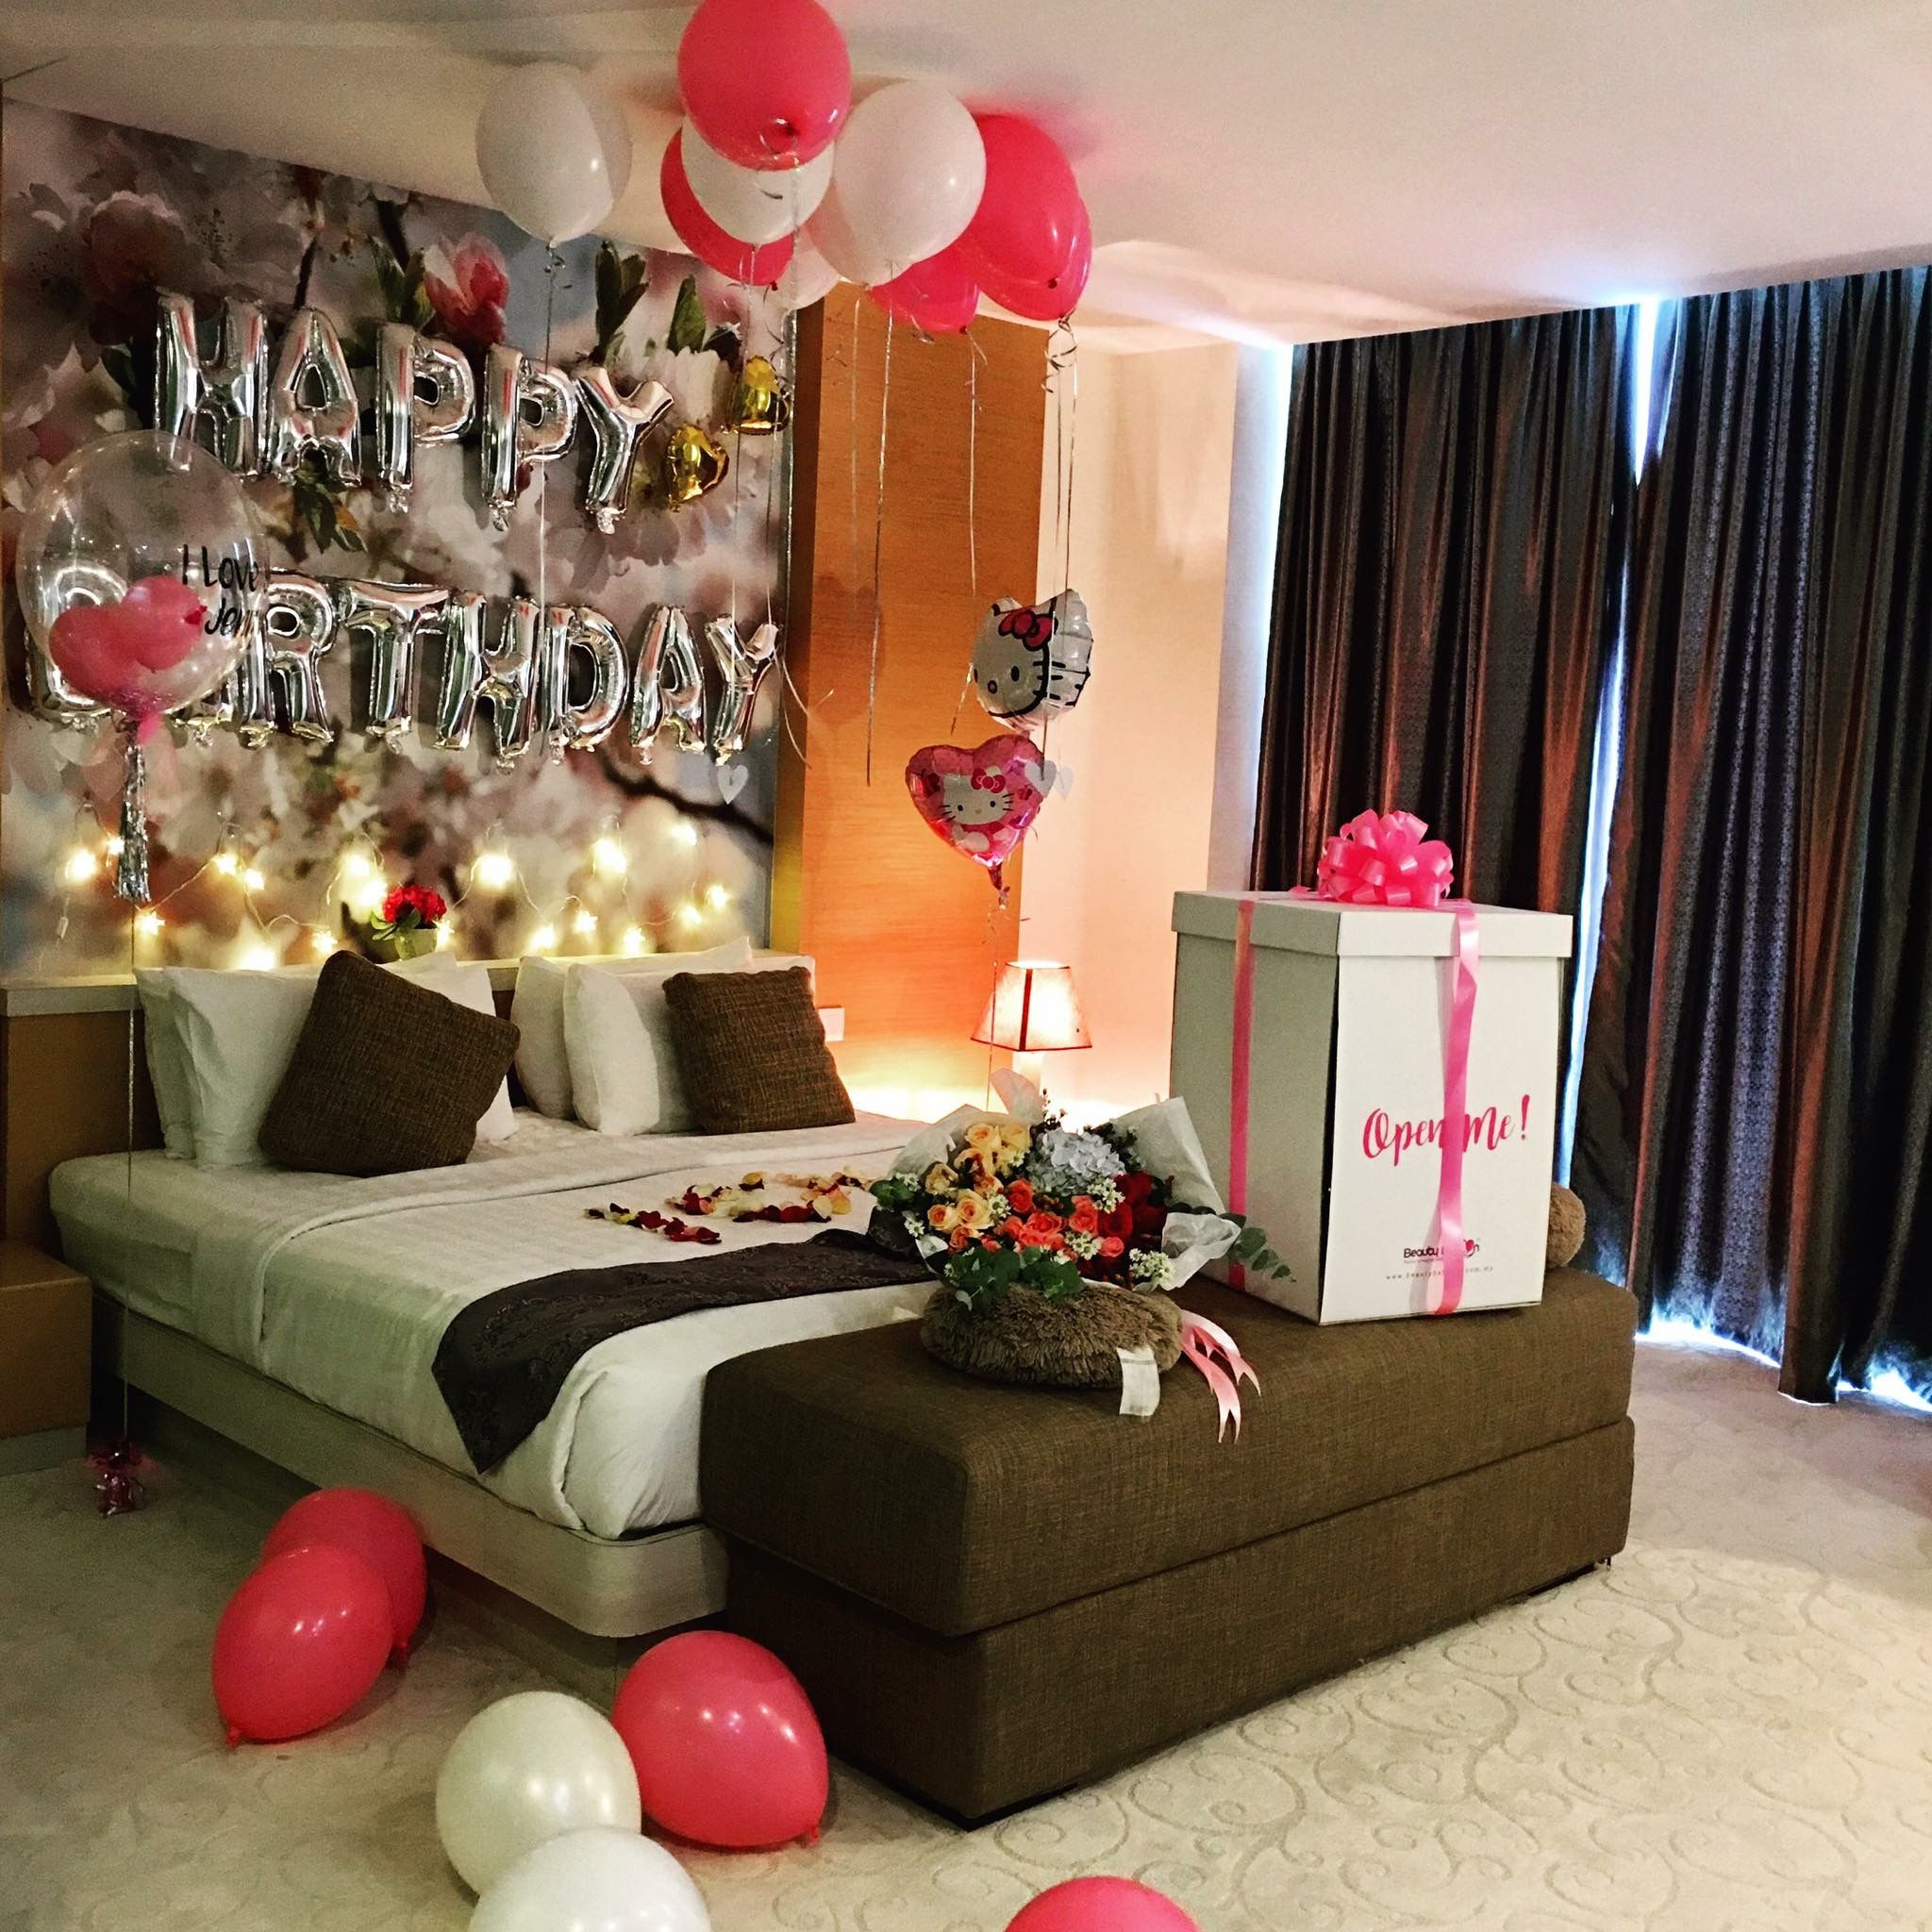 Wedding Gift Ideas For Best Friend Girl: Romantic Birthday, Birthday Room